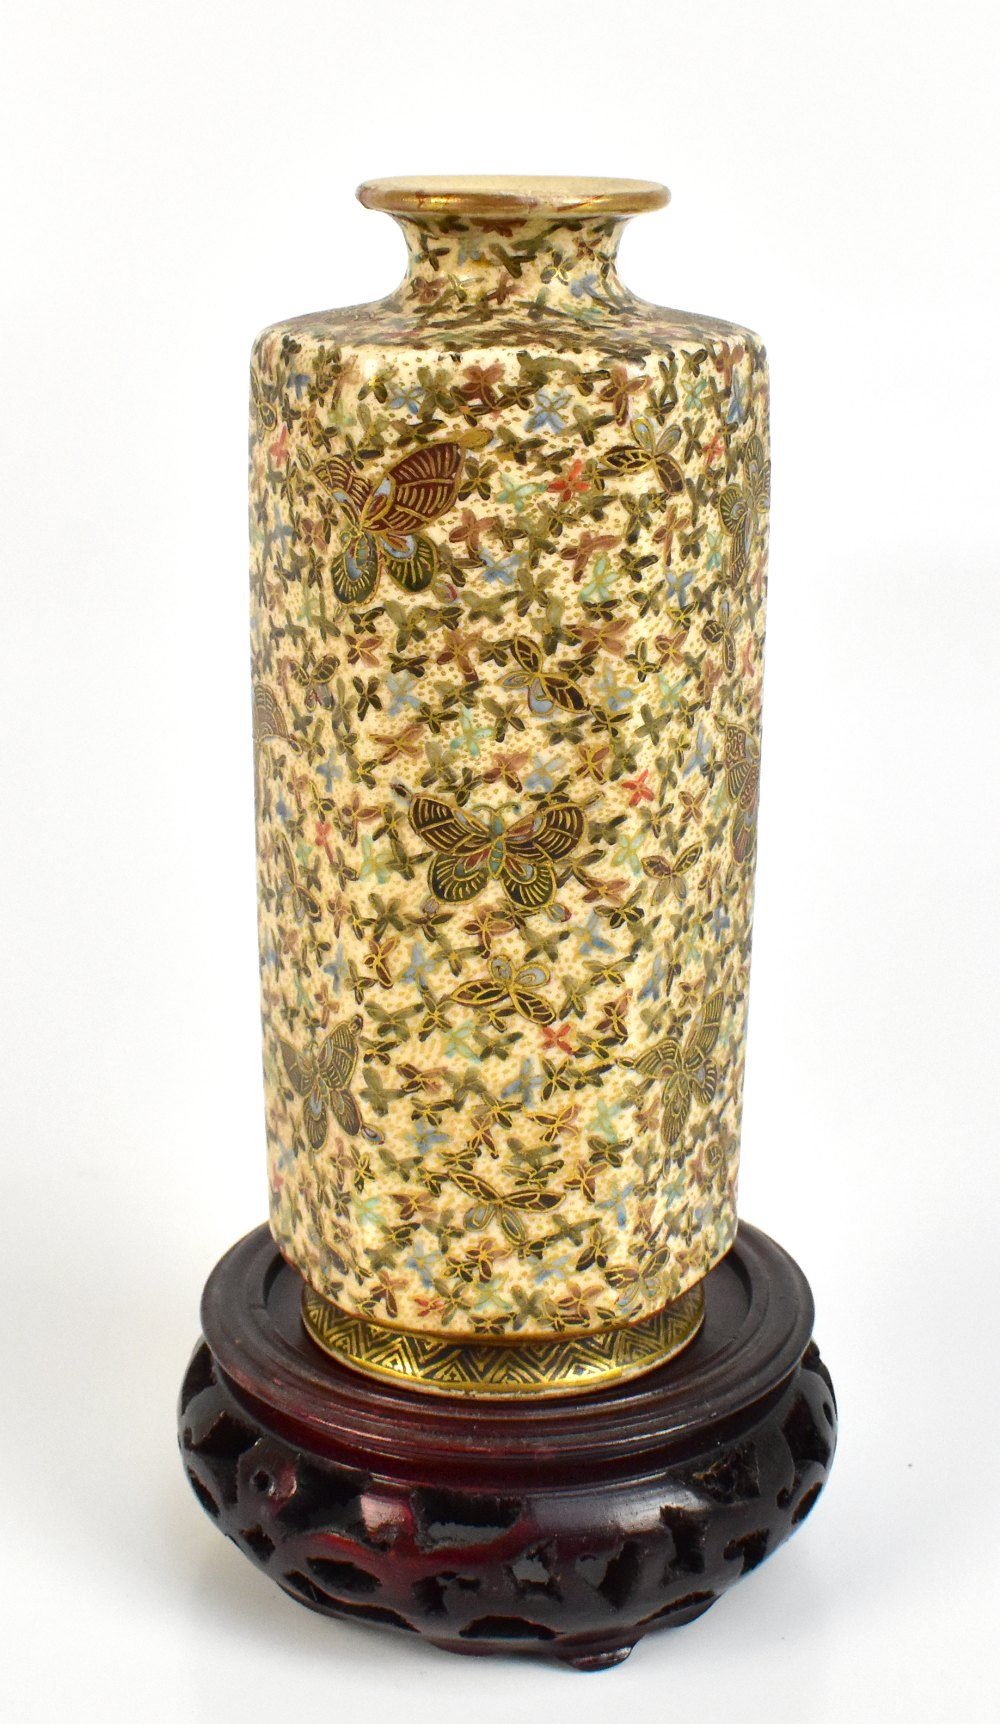 HODODA: a Meiji period Japanese Satsuma hexagonal vase painted with butterflies, with signature to